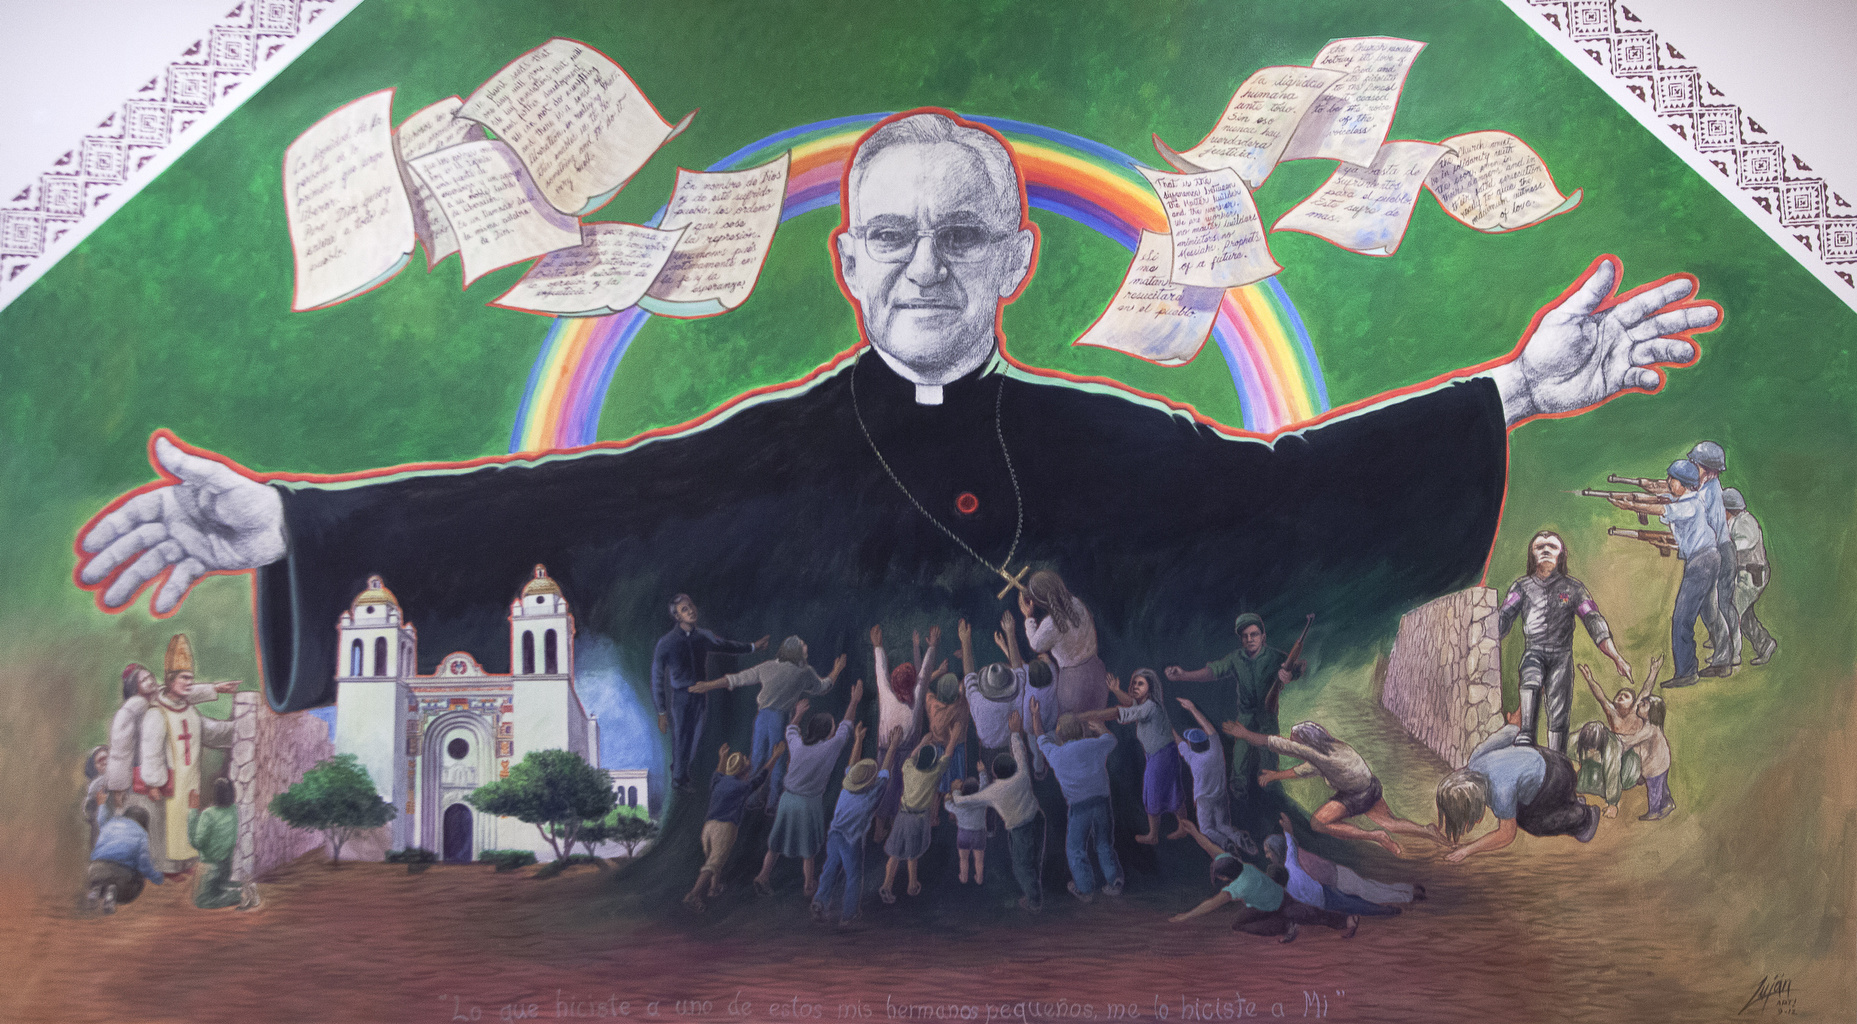 Mural of Salvadoran Archbishop Oscar Romero seen in 2012 at Columban Mission Center in El Paso